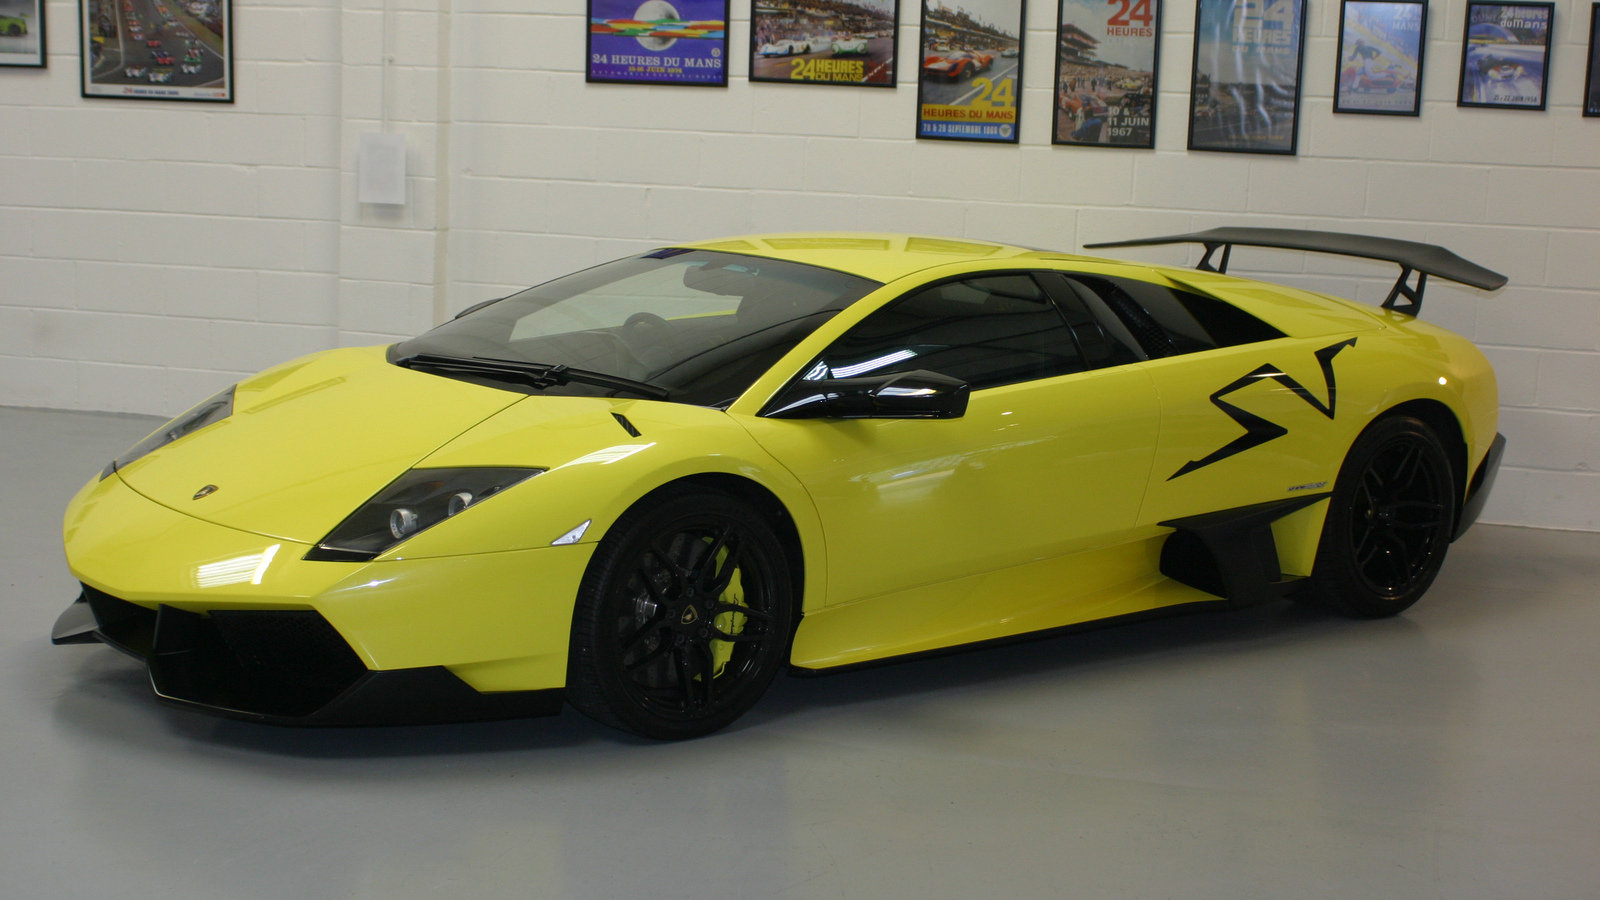 rare 2009 lamborghini murcielago sv up for sale picture. Black Bedroom Furniture Sets. Home Design Ideas